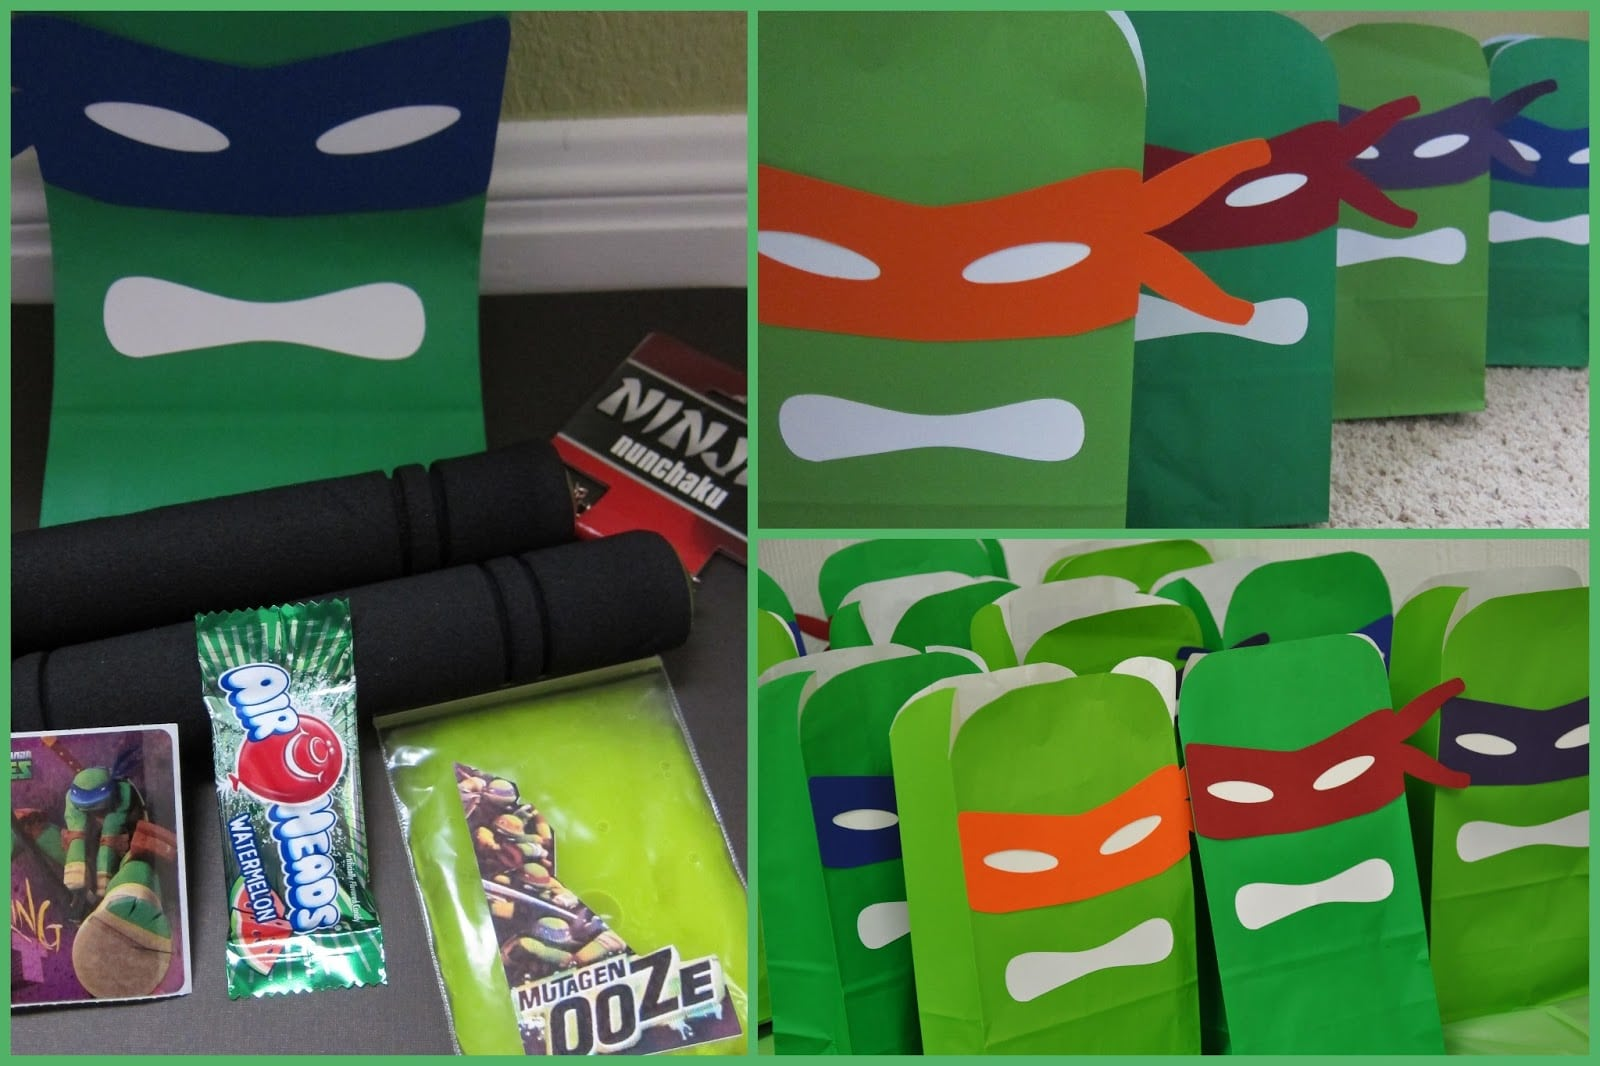 1000+ Images About Ninja Turtles Birthday Party Ideas On Pinterest